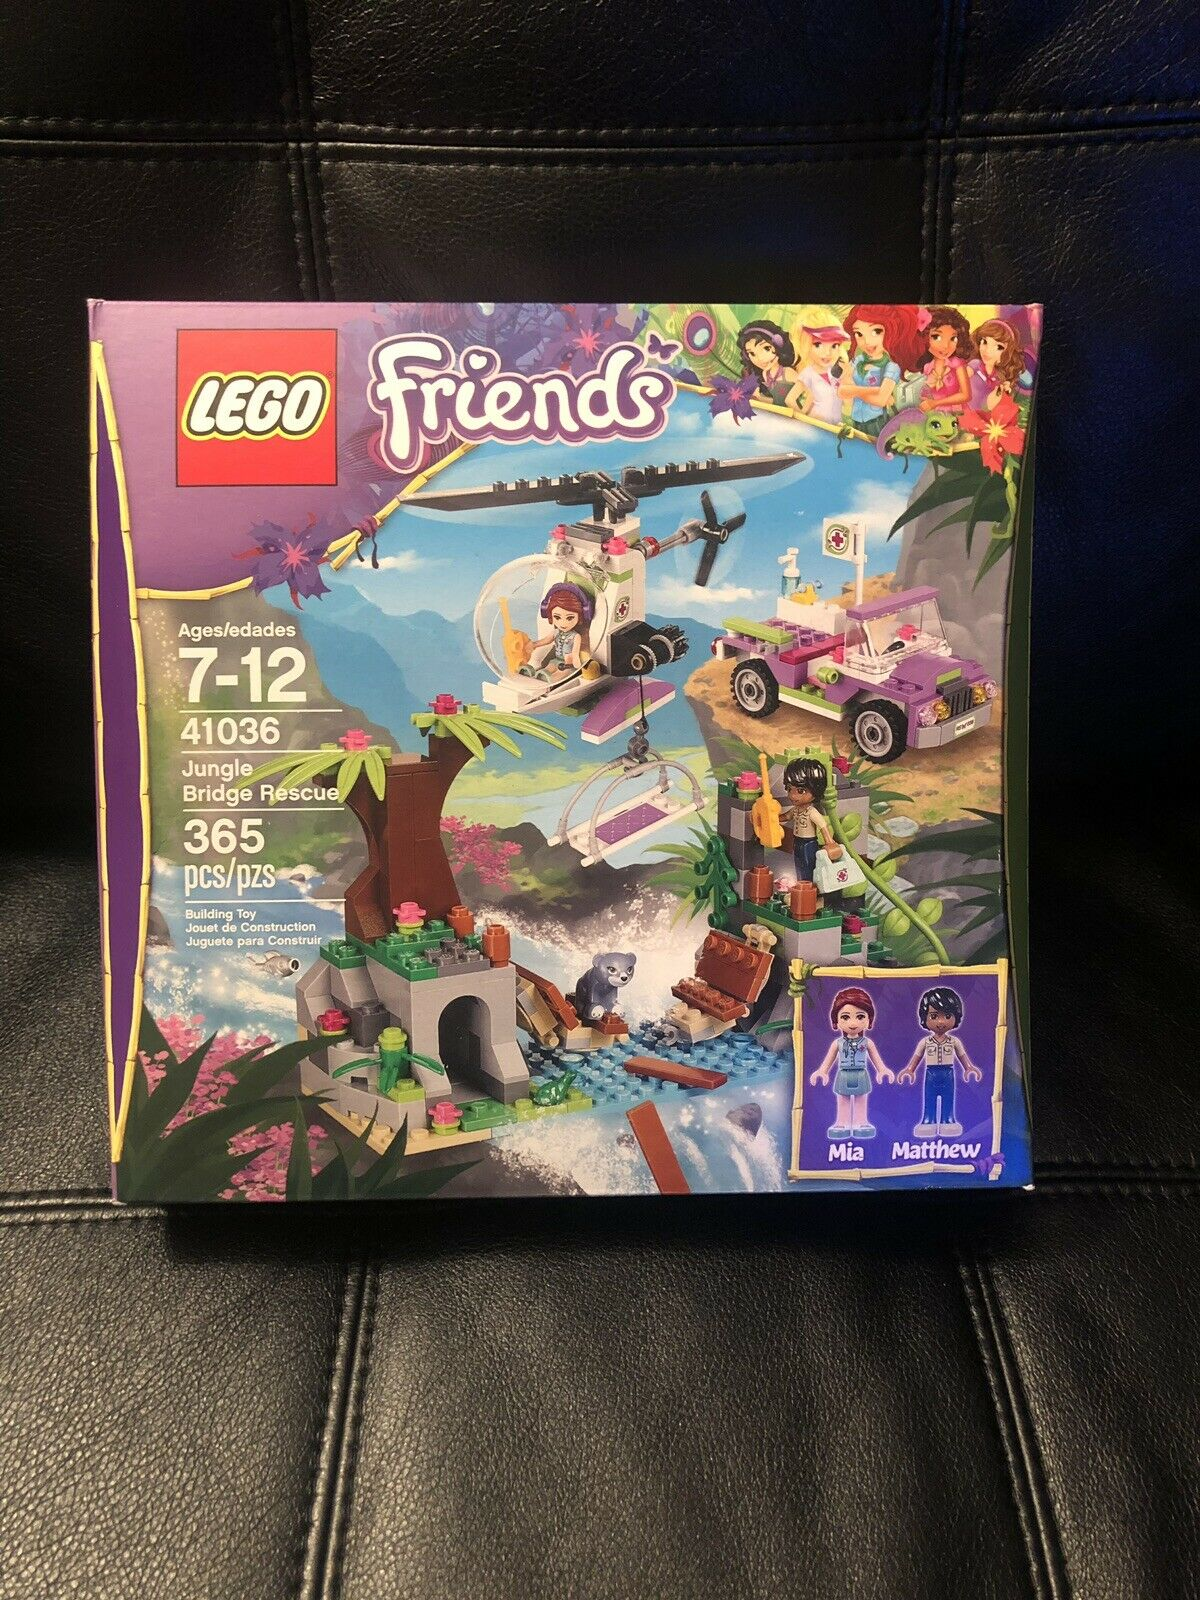 NEW LEGO Friends Jungle Bridge Rescue 41036 Building Set